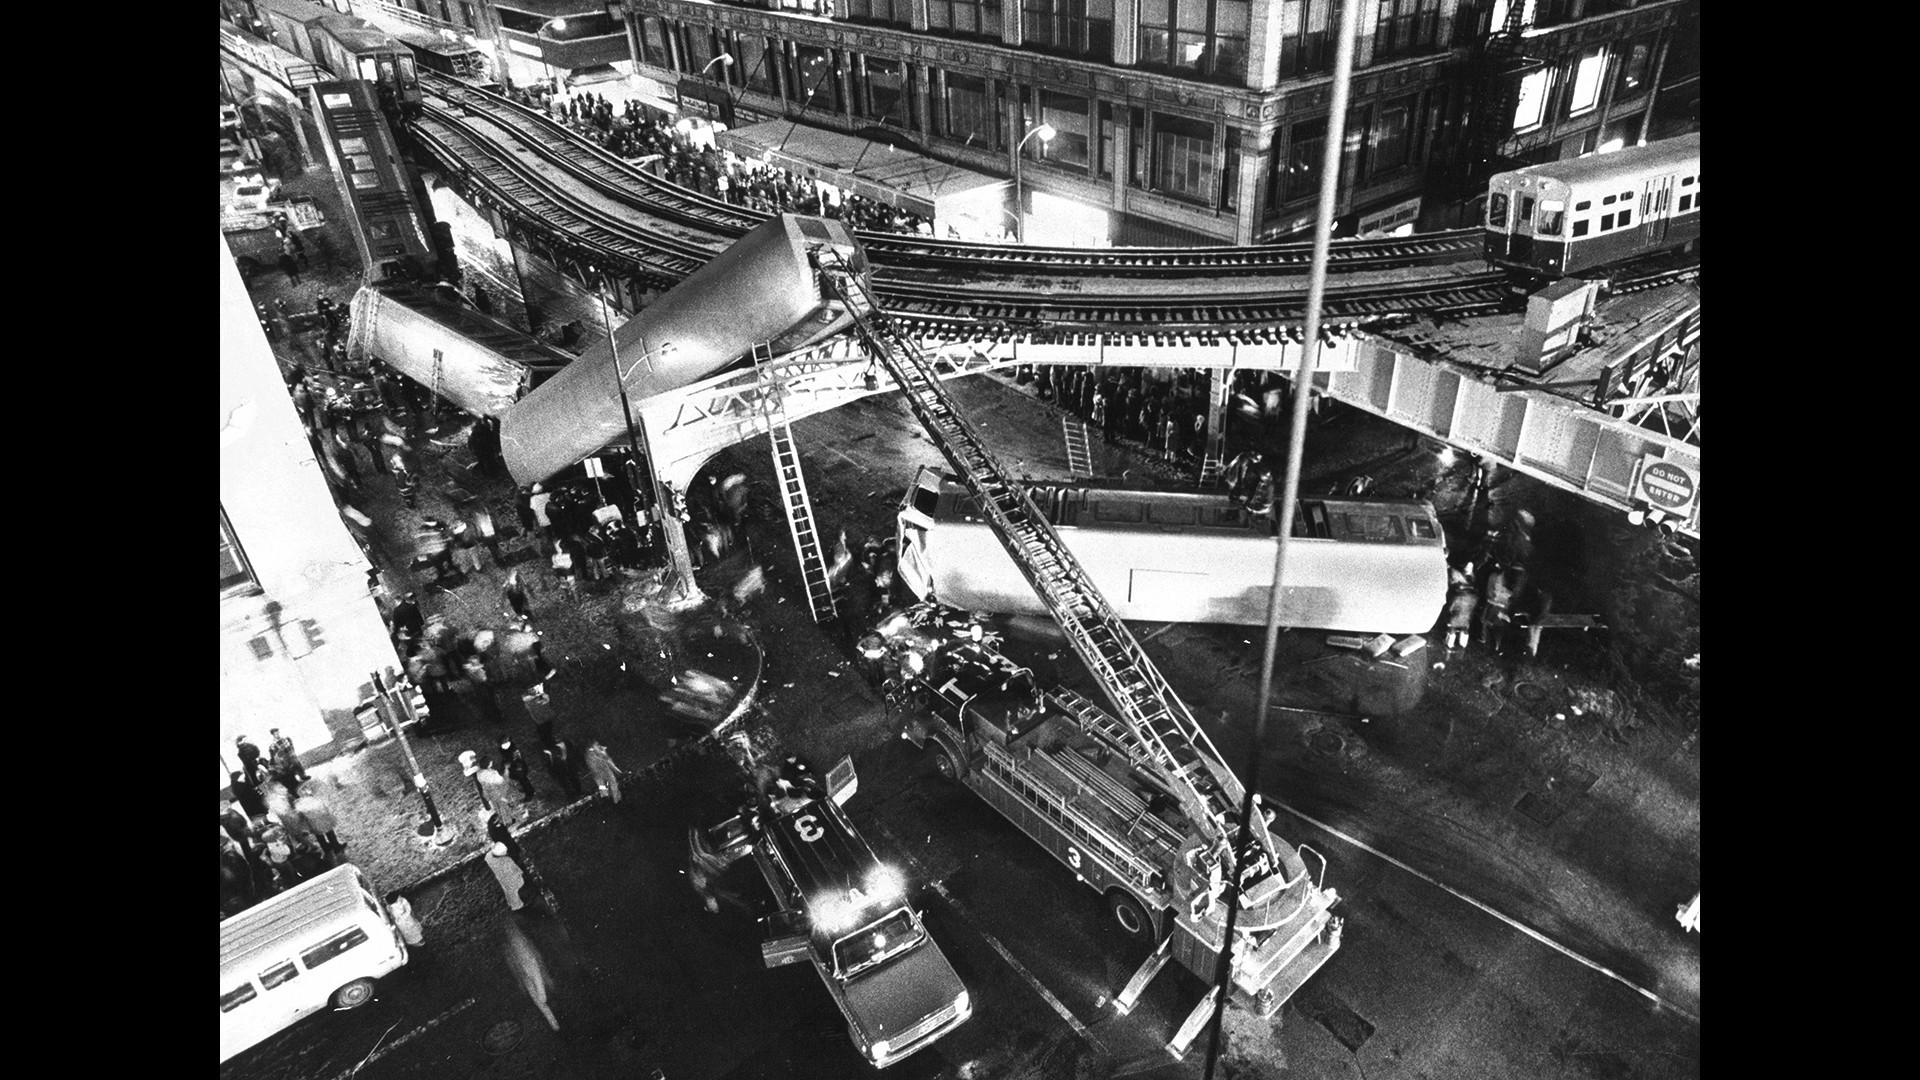 The 'L' crash of 1977: 'A slow-motion horror'